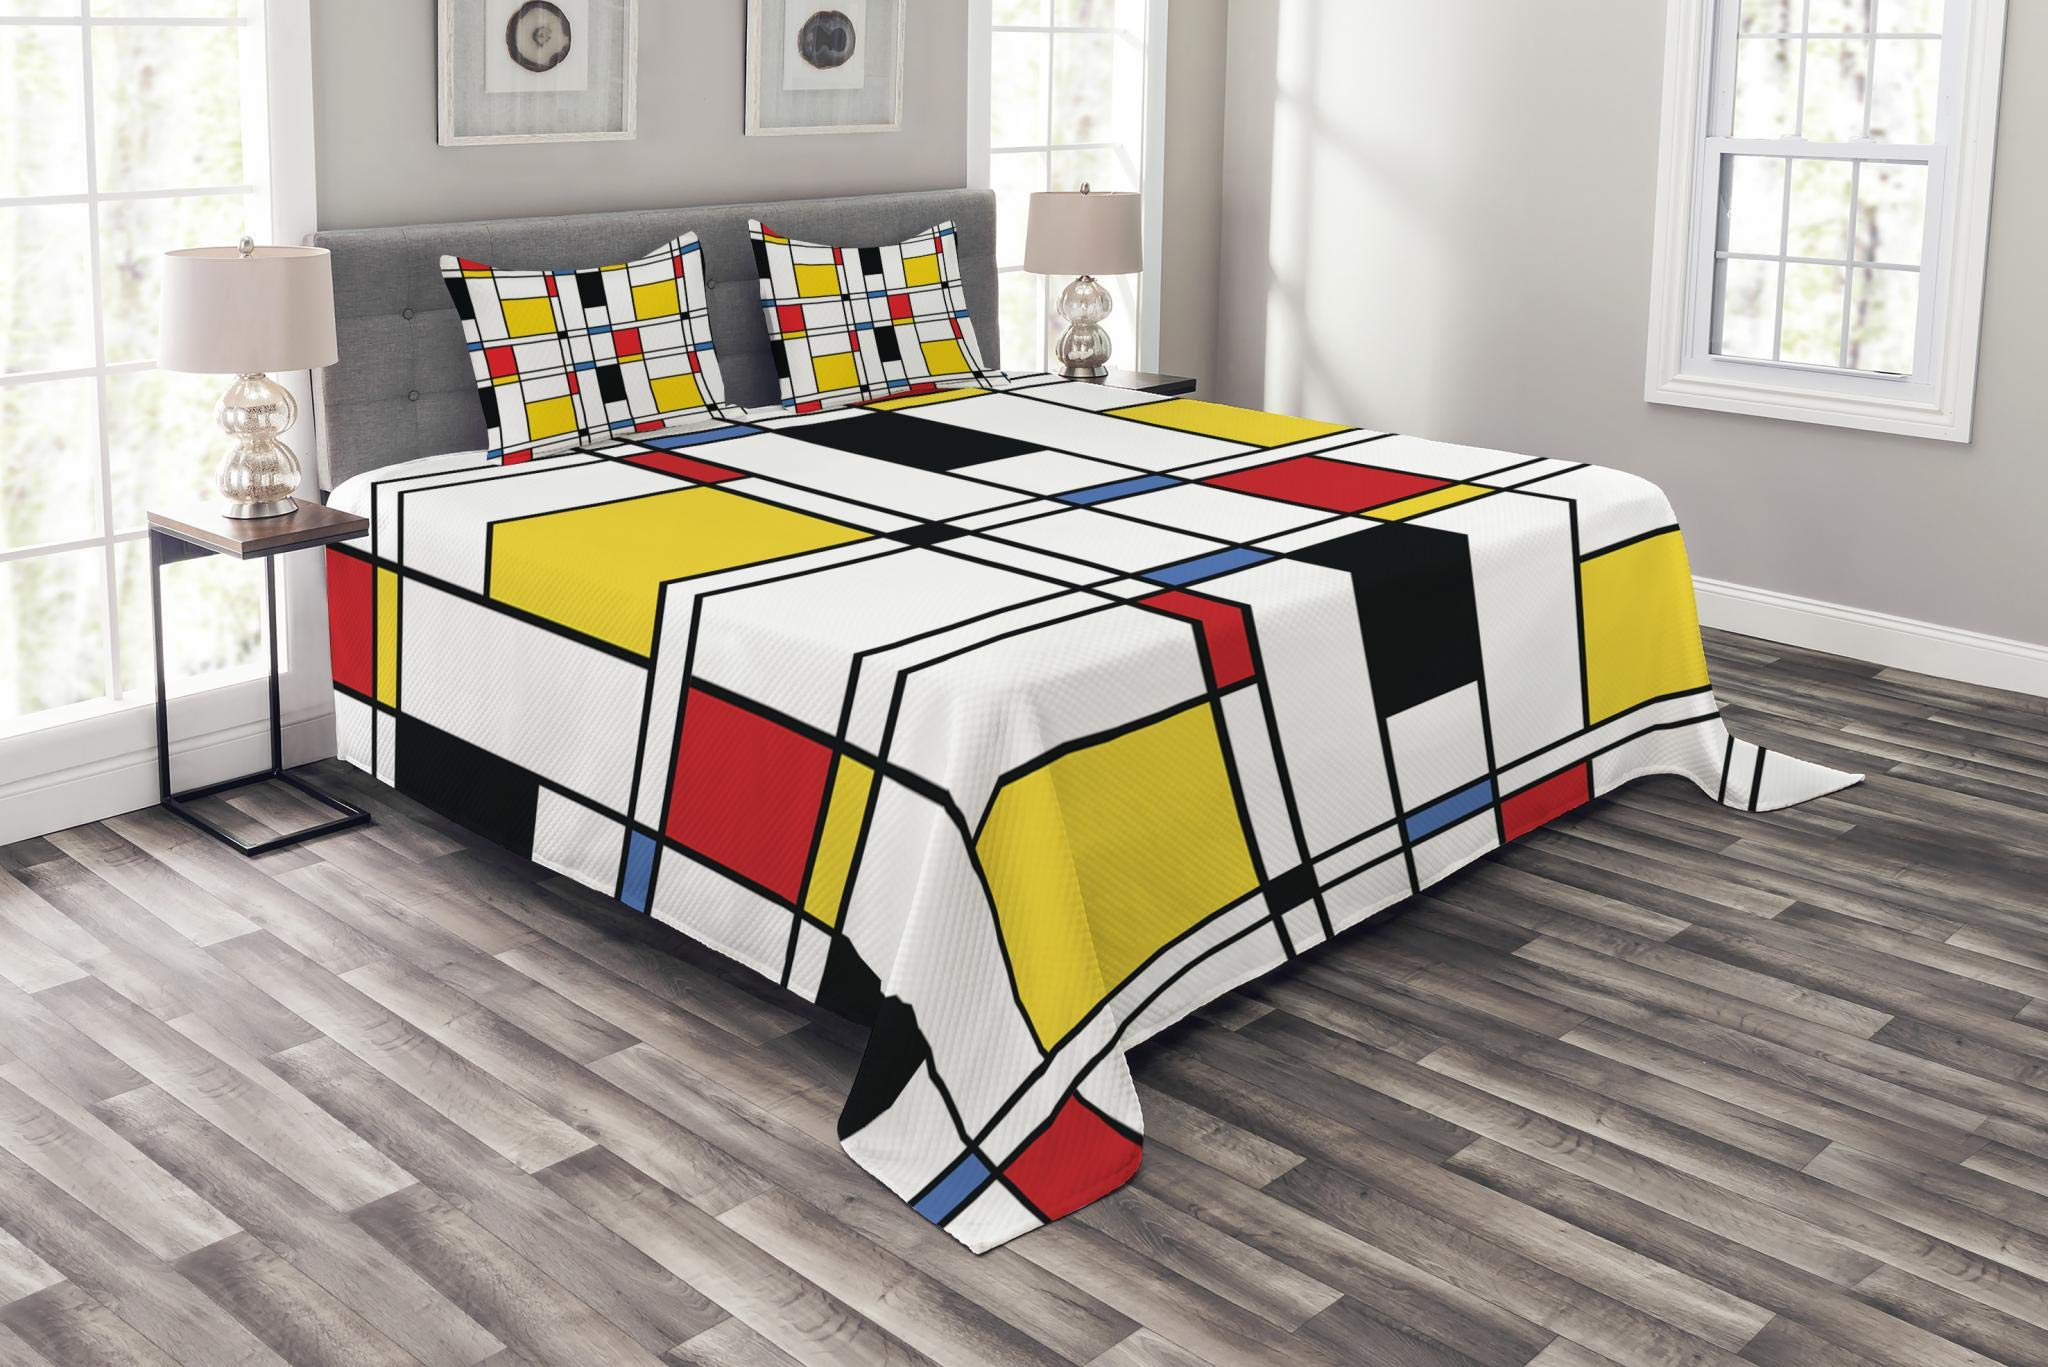 Lunarable Abstract Bedspread Set King Size, Geometric Colorful Pattern with Crossover Rectangle Frame Shapes Window Artistic, Decorative Quilted 3 Piece Coverlet Set with 2 Pillow Shams, Multicolor